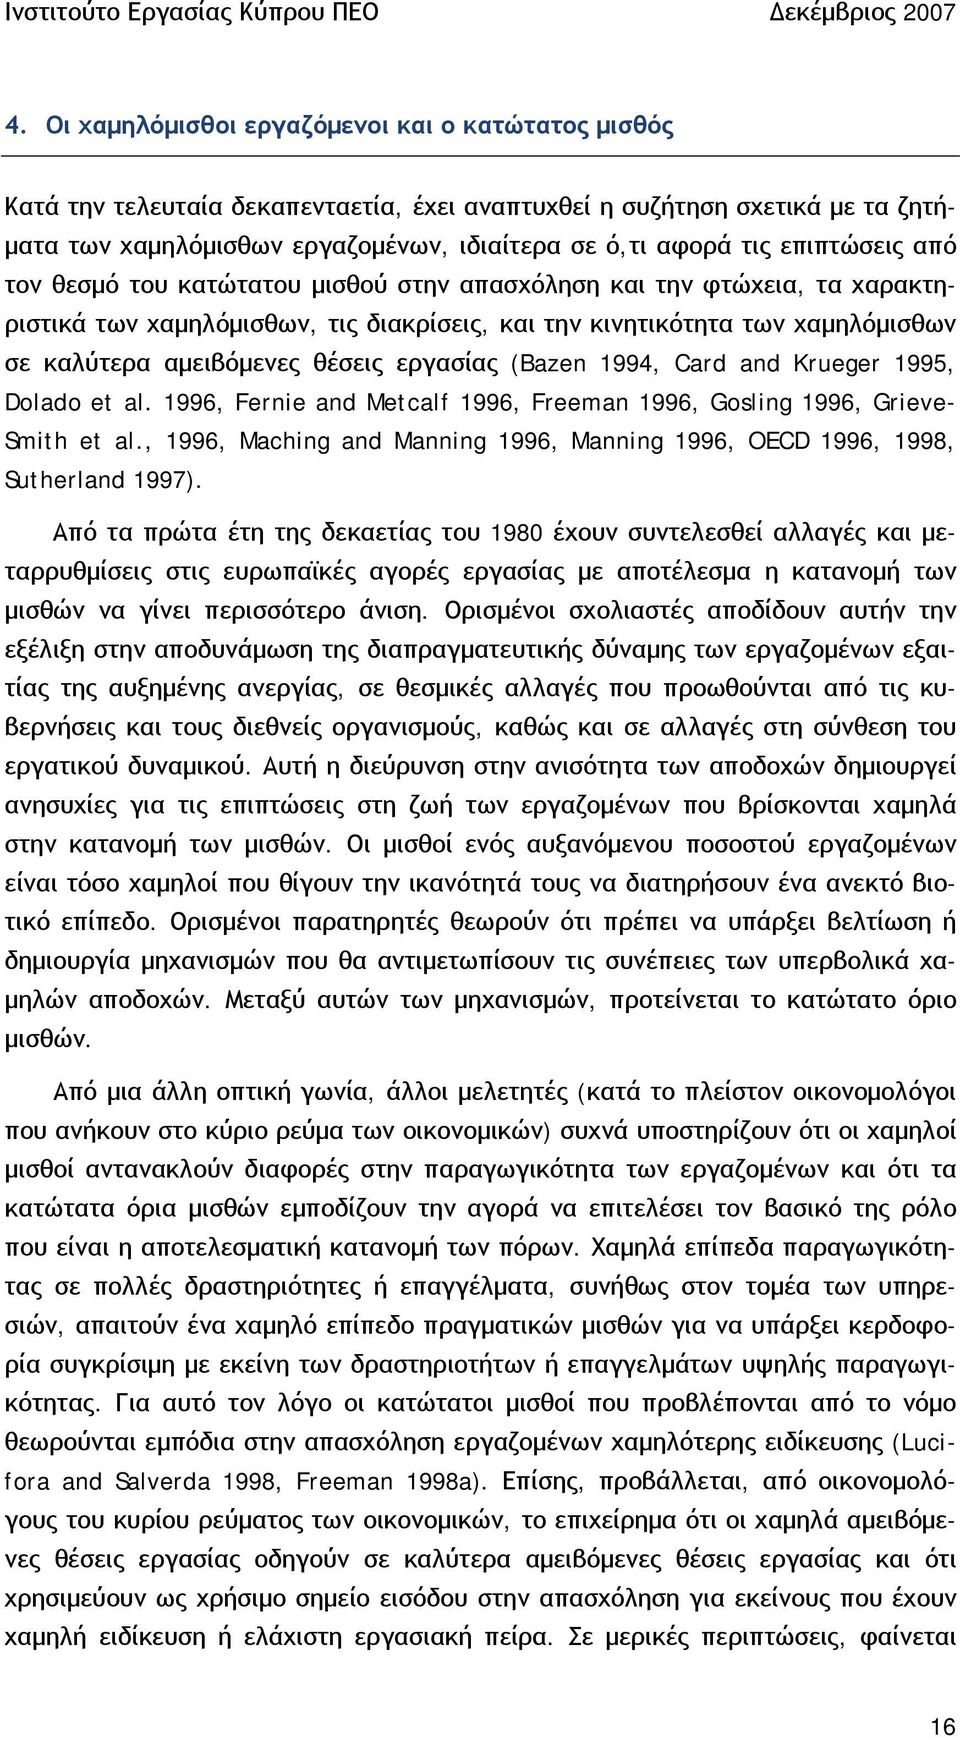 εργασίας (Bazen 1994, Card and Krueger 1995, Dolado et al. 1996, Fernie and Metcalf 1996, Freeman 1996, Gosling 1996, Grieve- Smith et al.